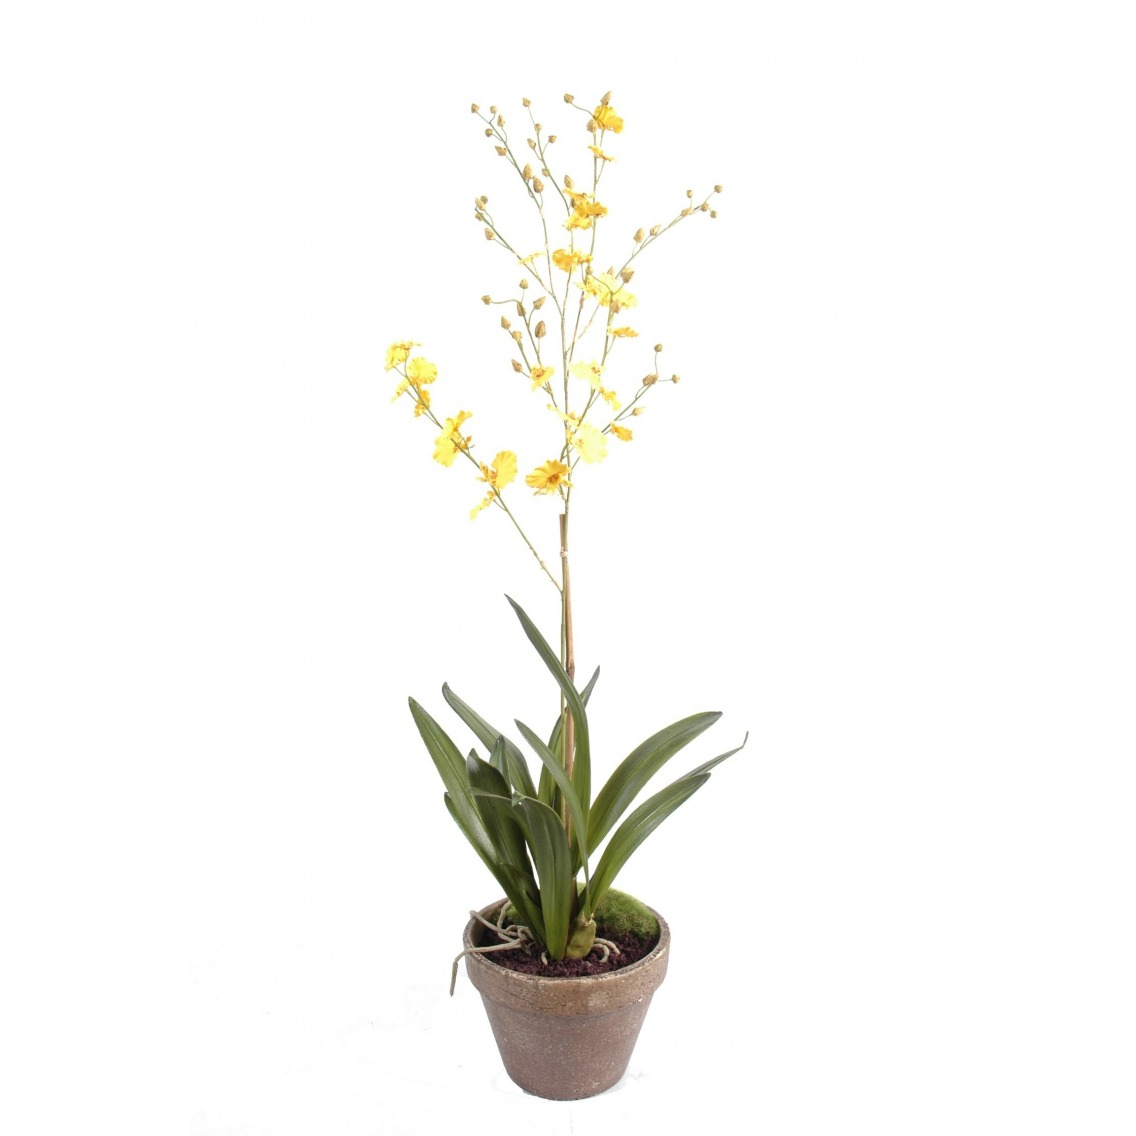 Orchidée artificielle fleurie en pot